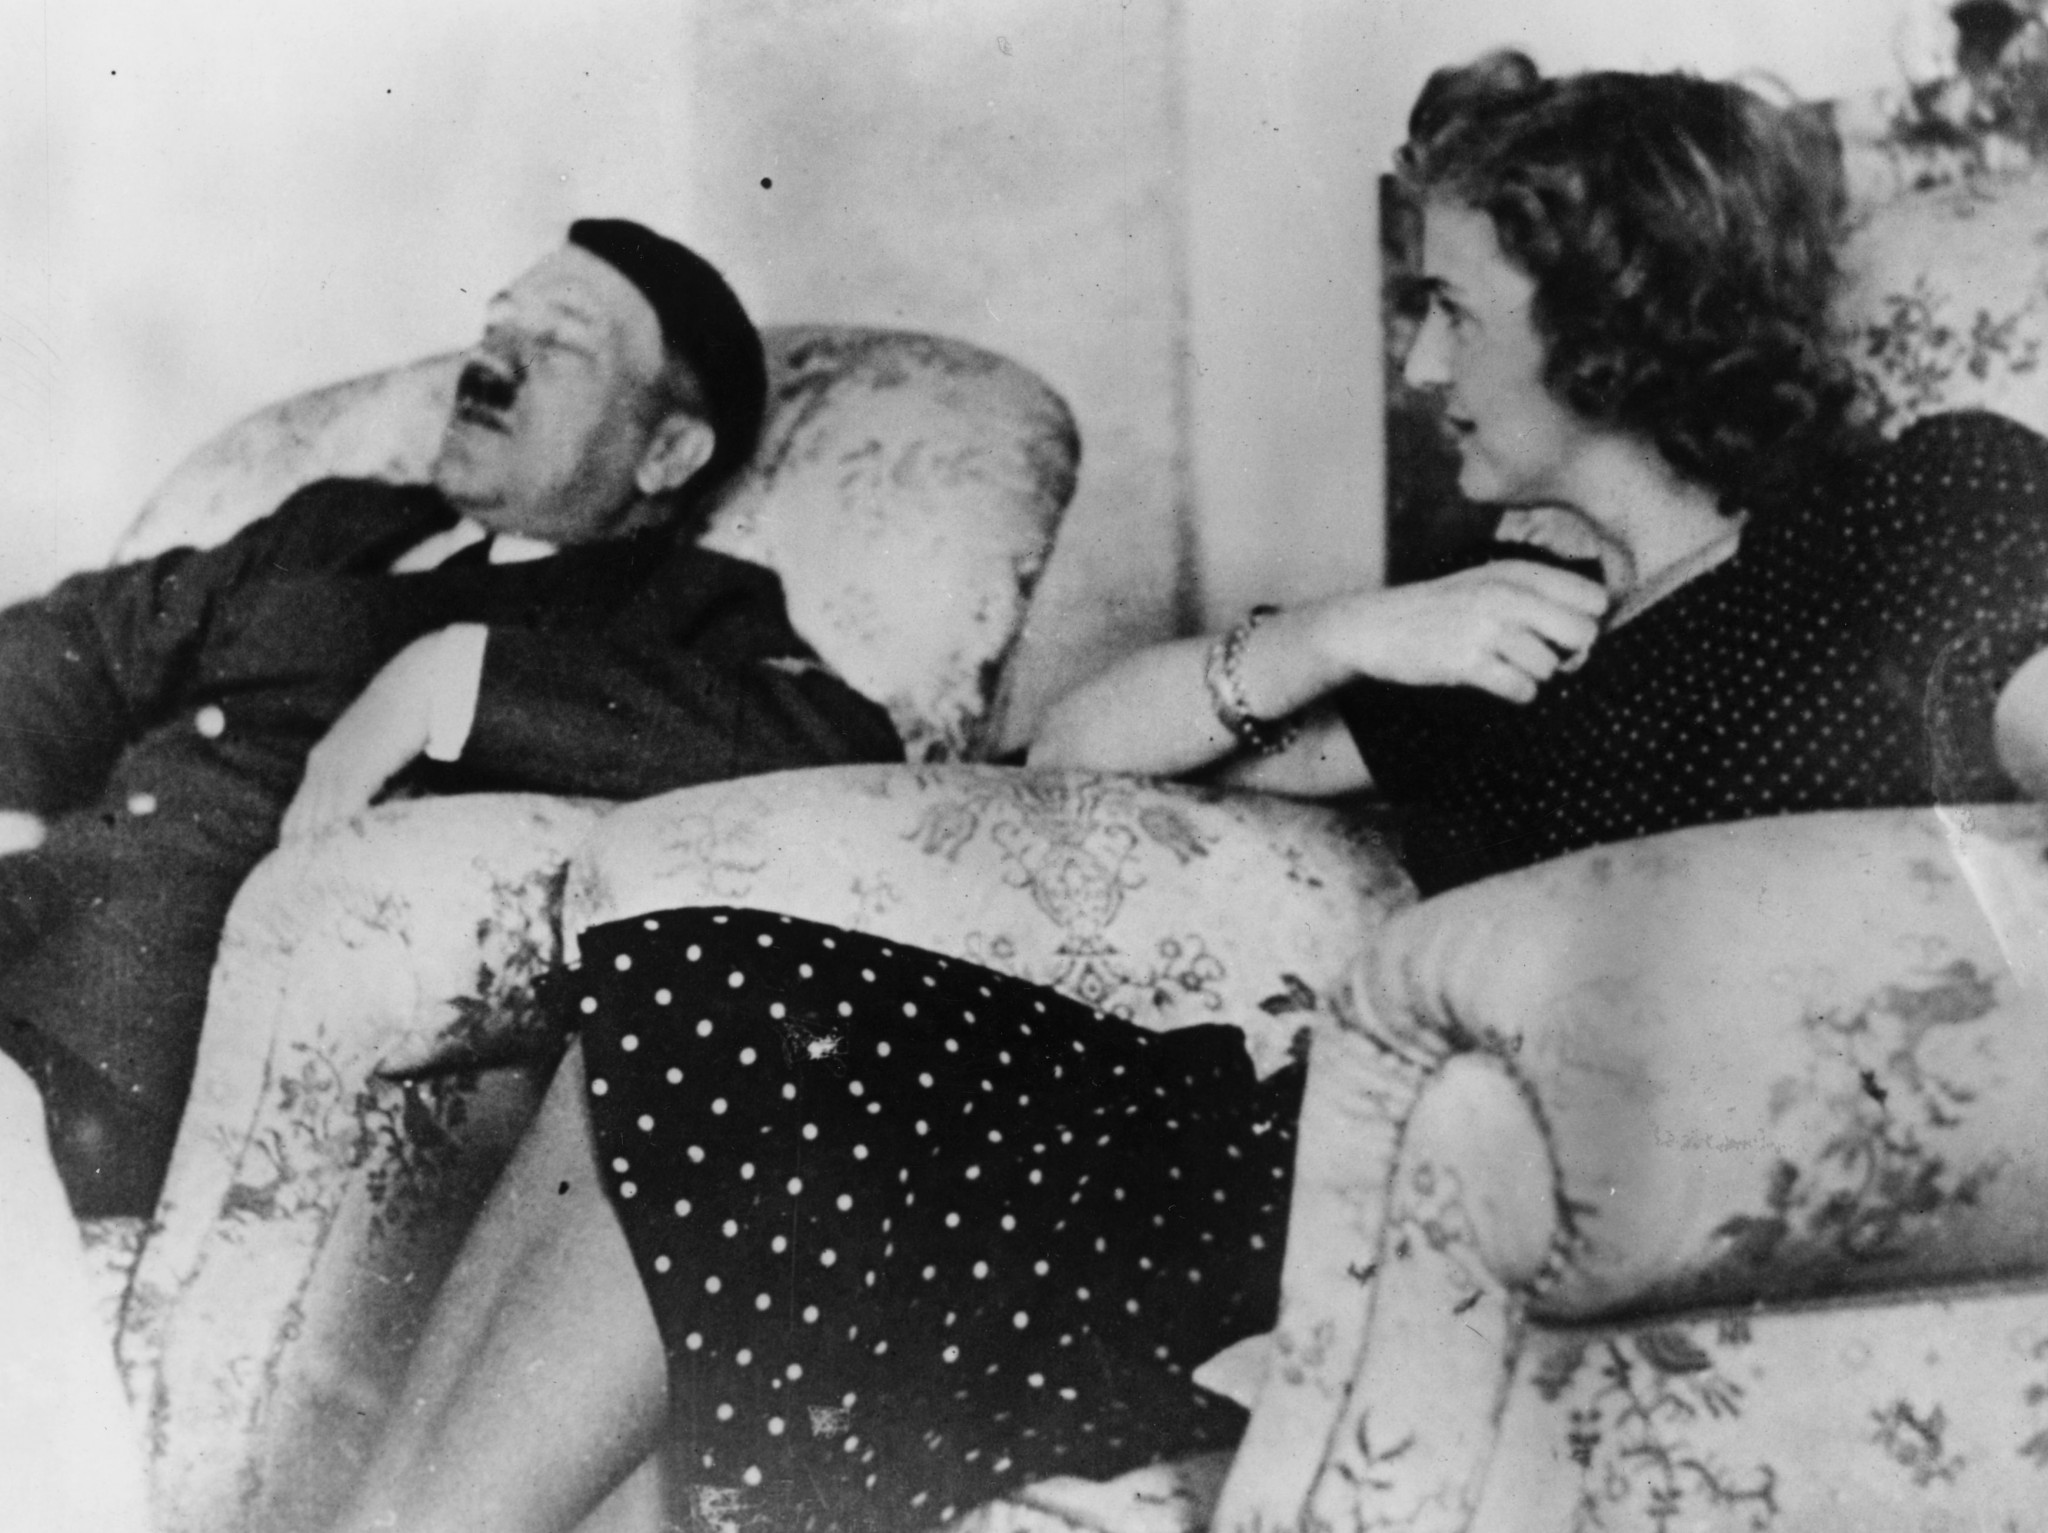 Nazi architect Albert Speer says Adolf Hitler and Eva Braun didn't have a sexually normal relationship – Loaded